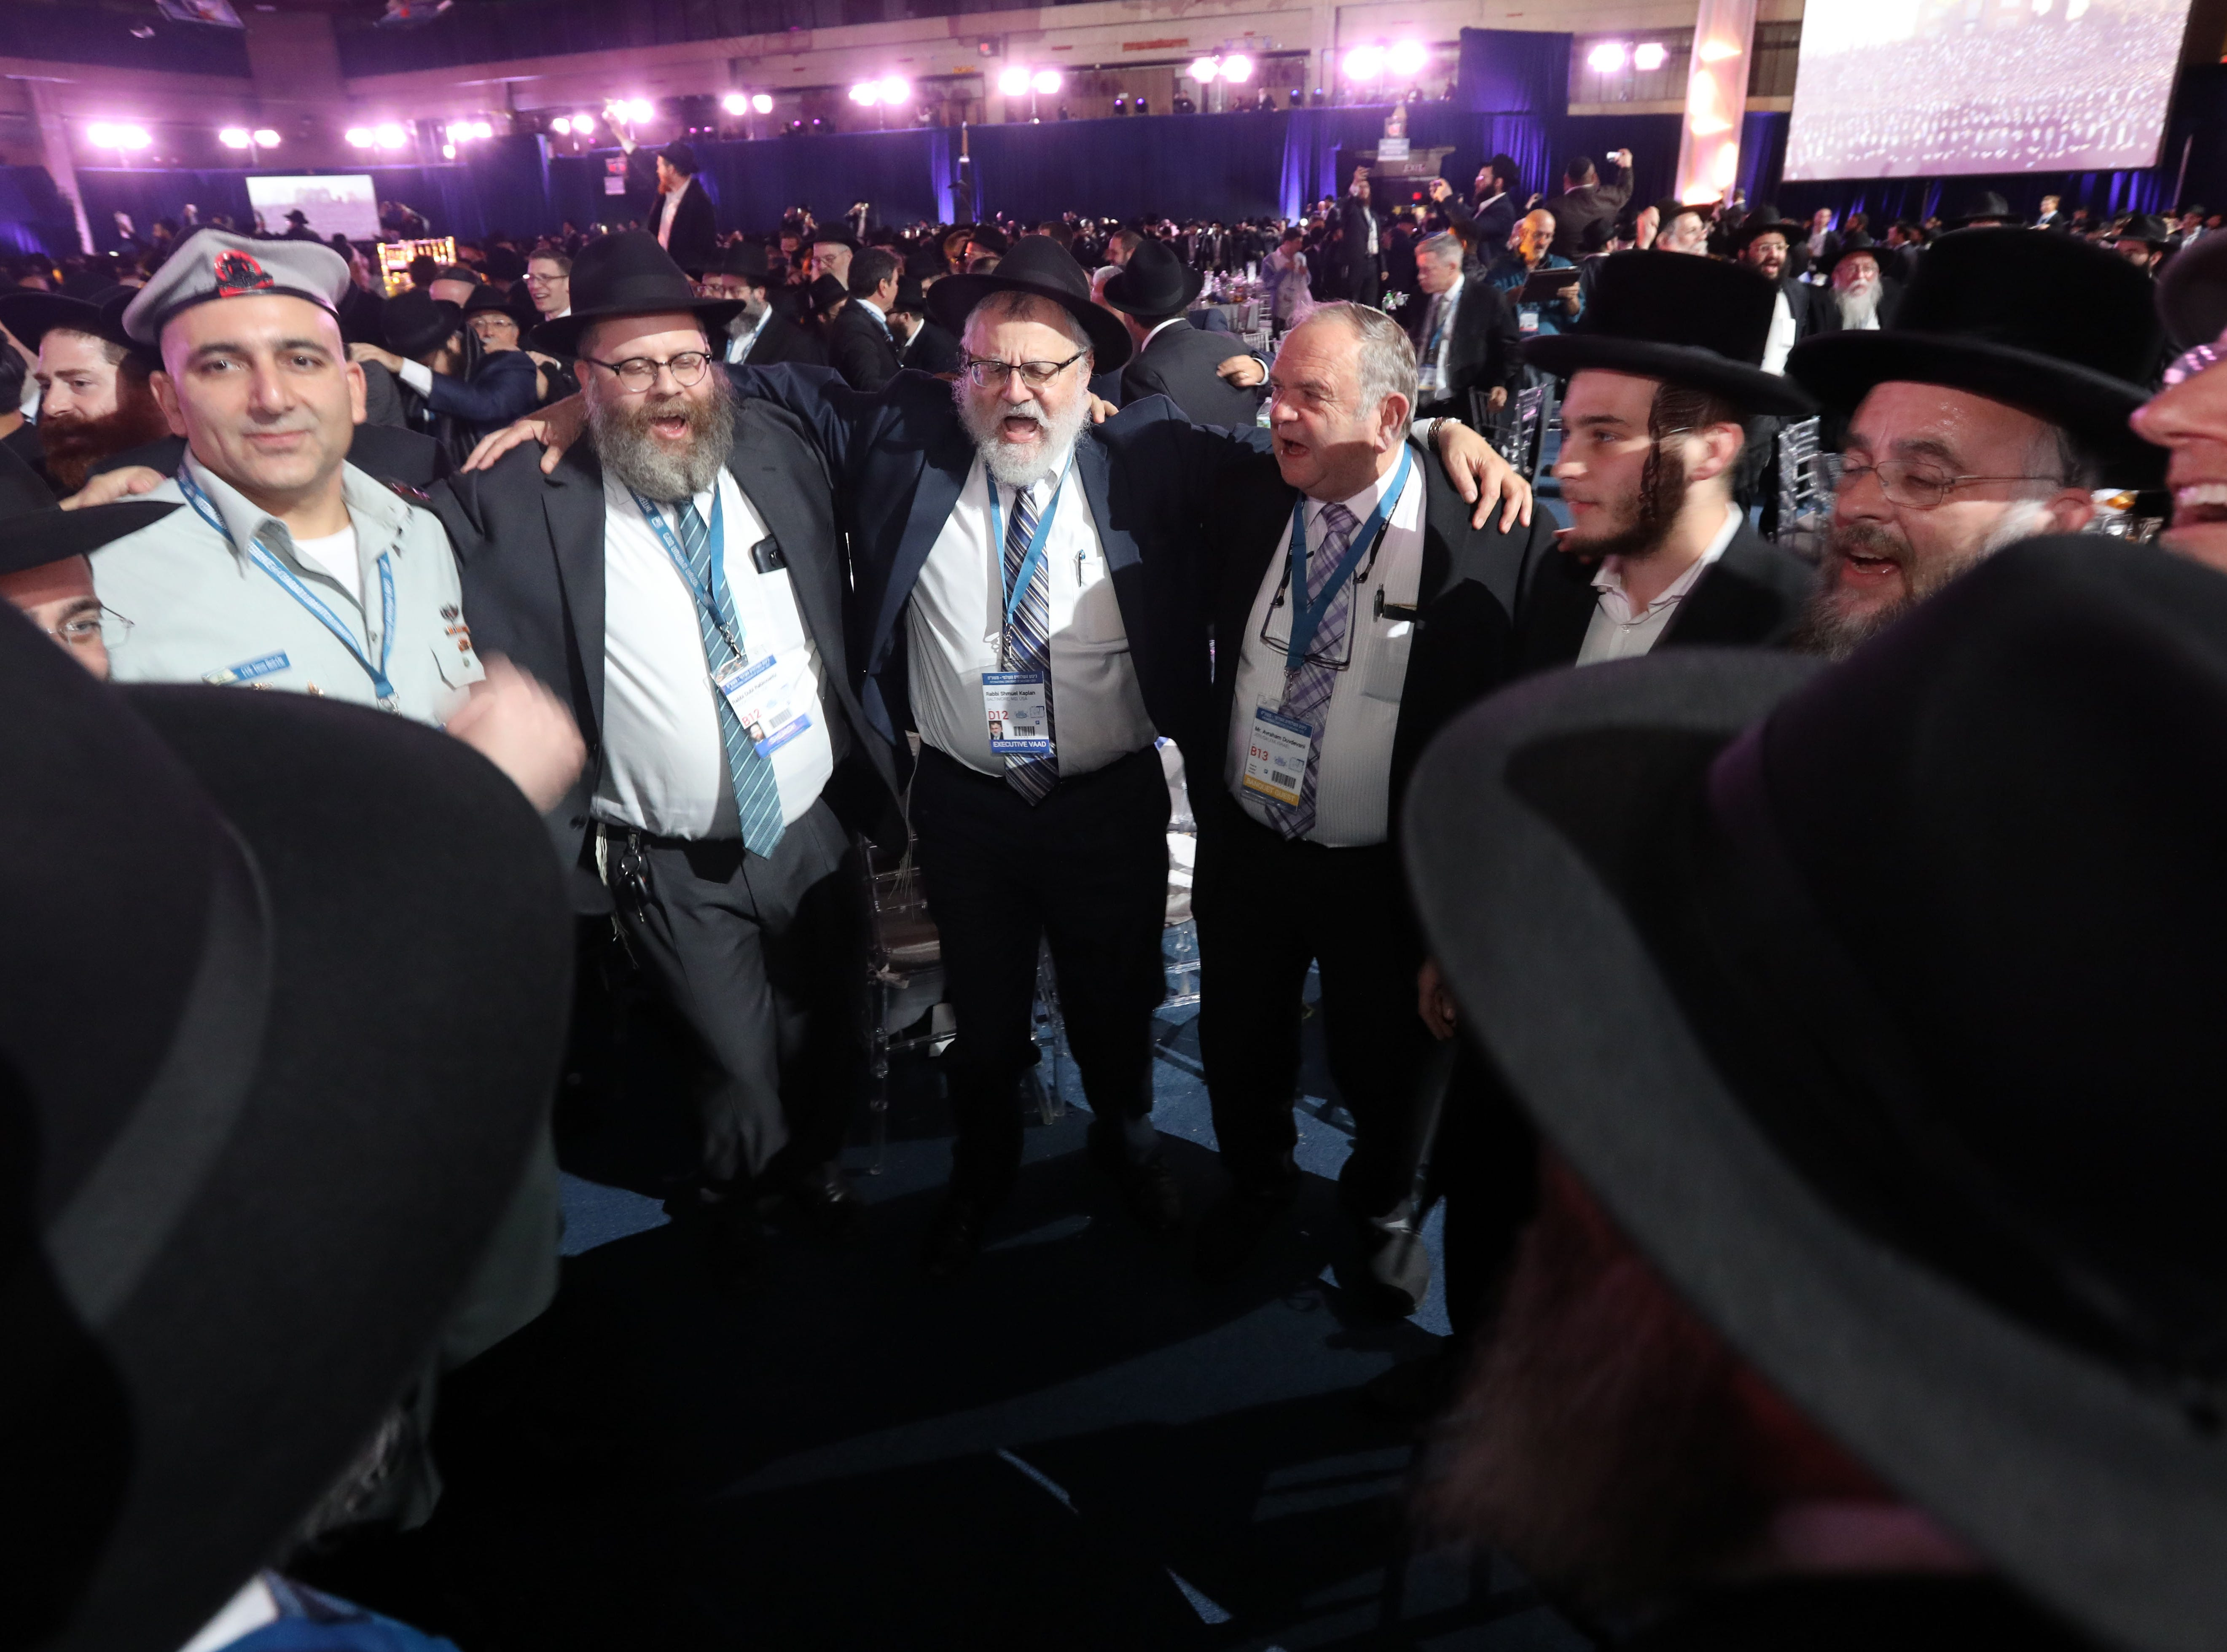 Rabbis dance during a gala at Rockland Community College Nov. 4, 1018 in Suffern. About 5,600 rabbis and their colleagues from 100 countries gathered in New York for an International Conference of Chabad-Lubavitch Emissaries.